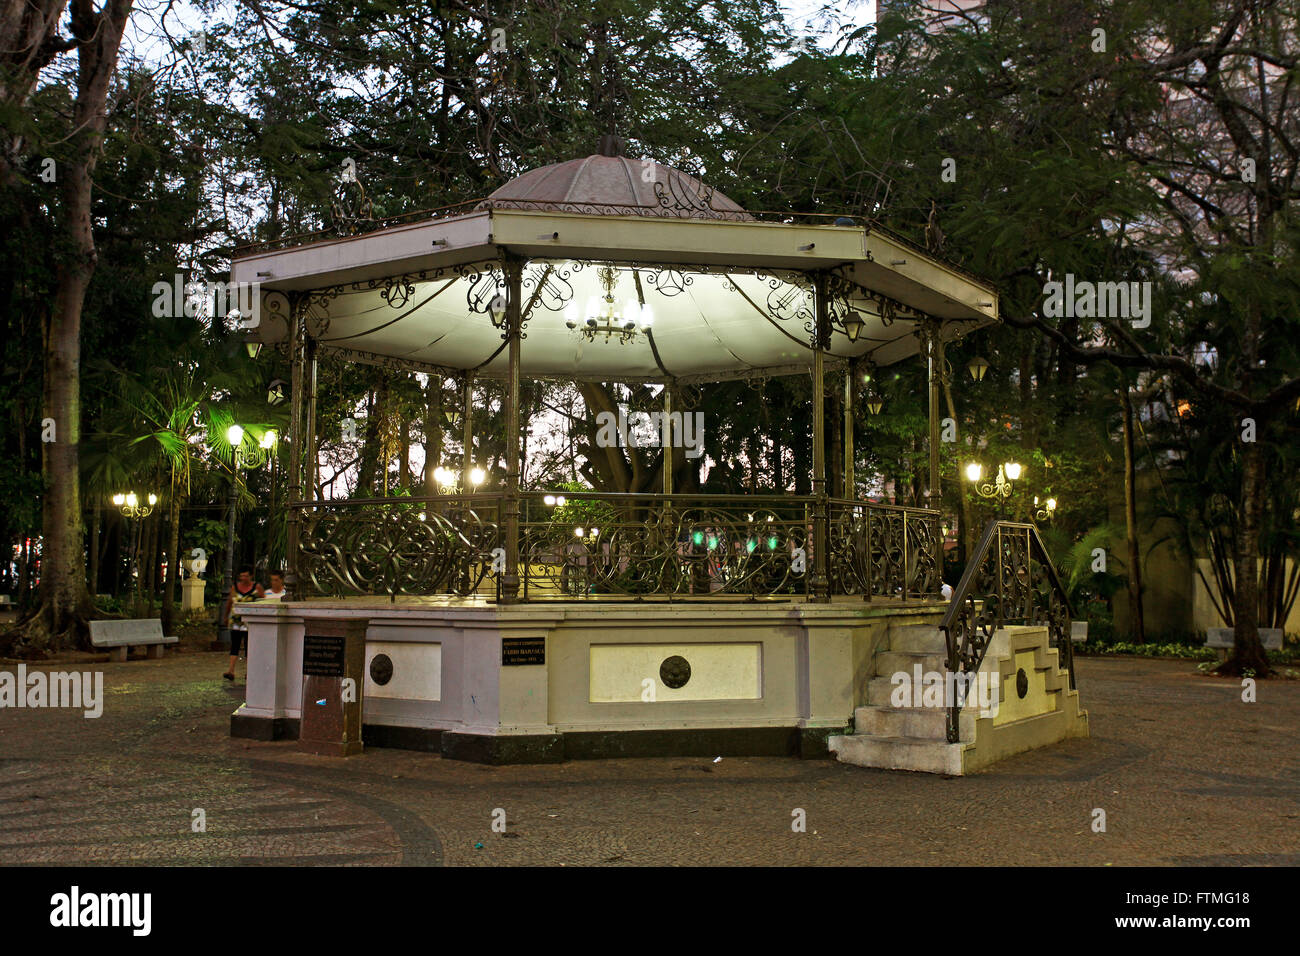 Bandstand in the Praca Marques Teixeira Lieutenant Othniel - Public Garden created in 1886 - Stock Image